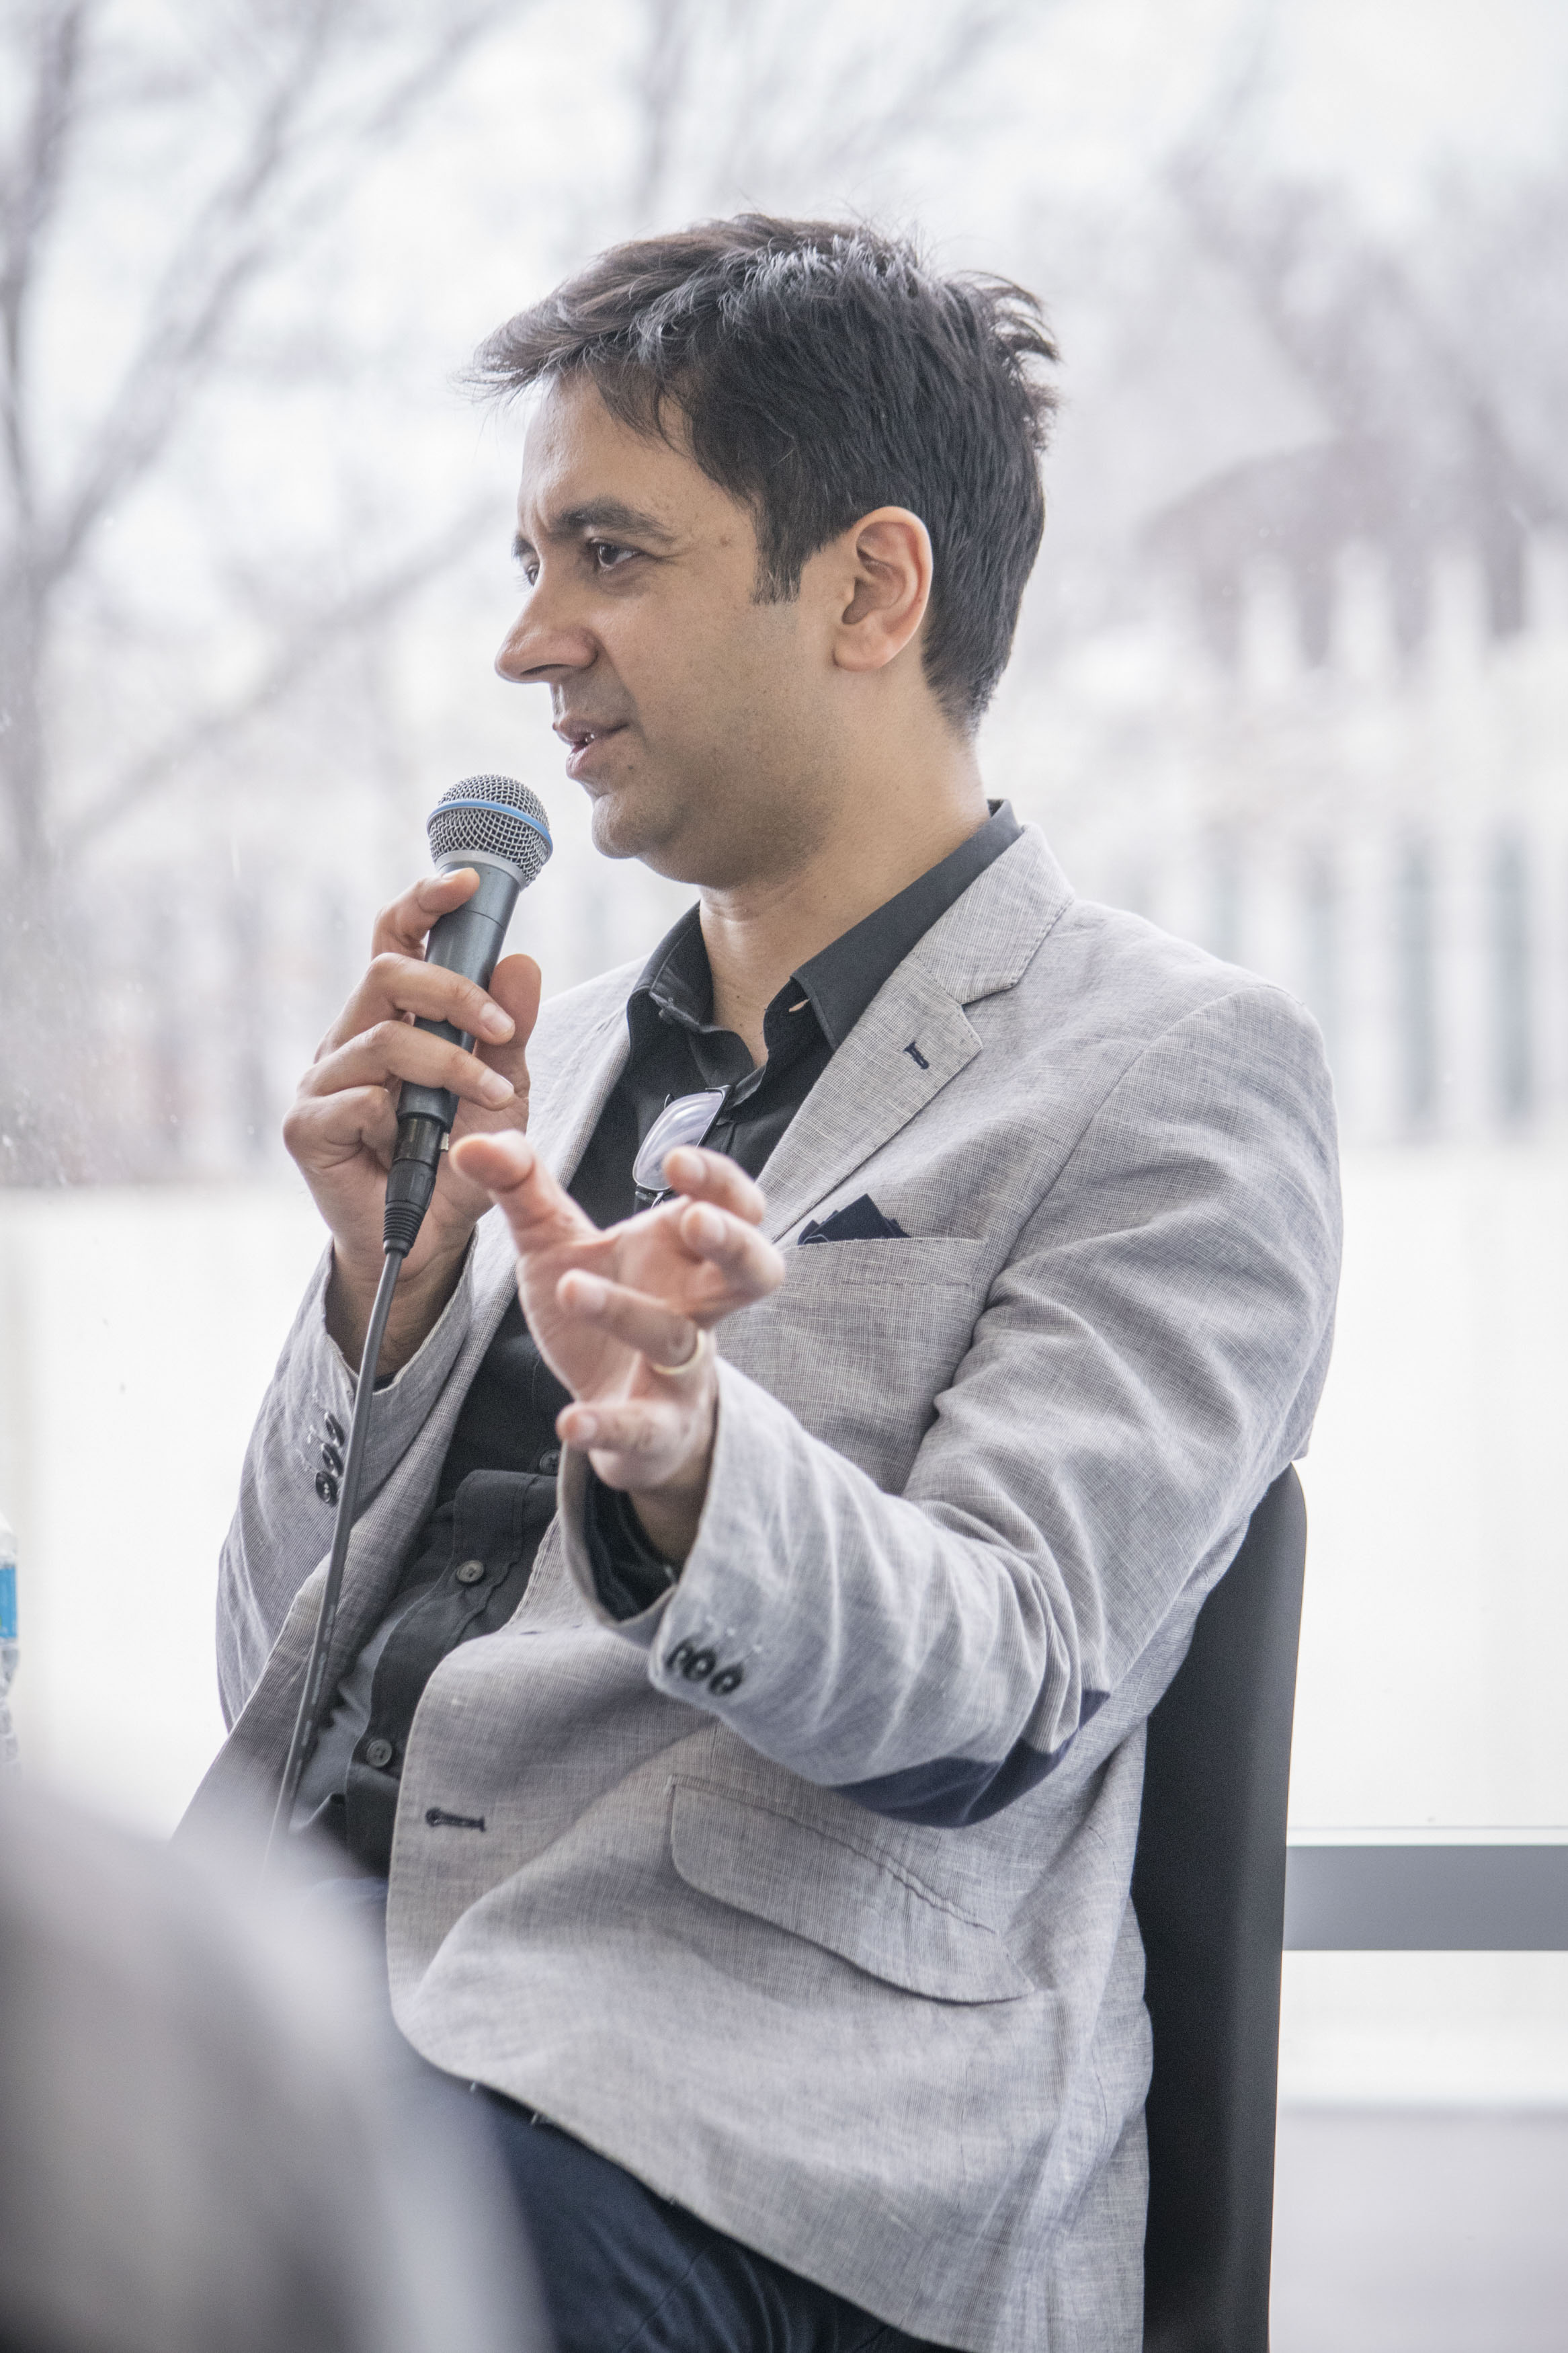 Jazz pianist and composer Vijay Iyer visits Oberlin to attend a workshop performance of Trouble, his new violin concerto, ahead of its world premiere in June.